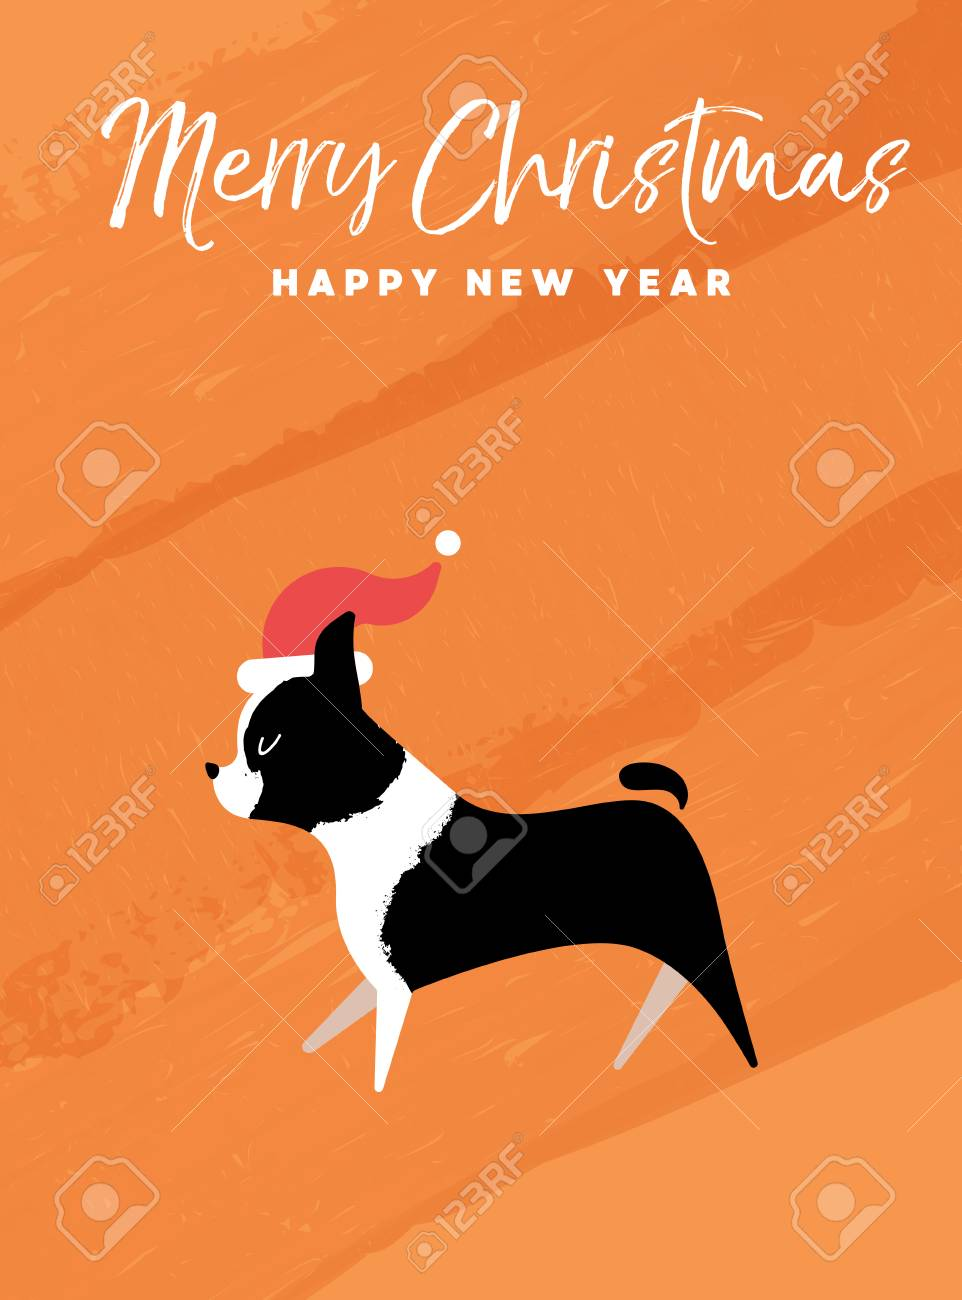 Merry christmas and happy new year holiday greeting card merry christmas and happy new year holiday greeting card illustrationston terrier dog with santa m4hsunfo